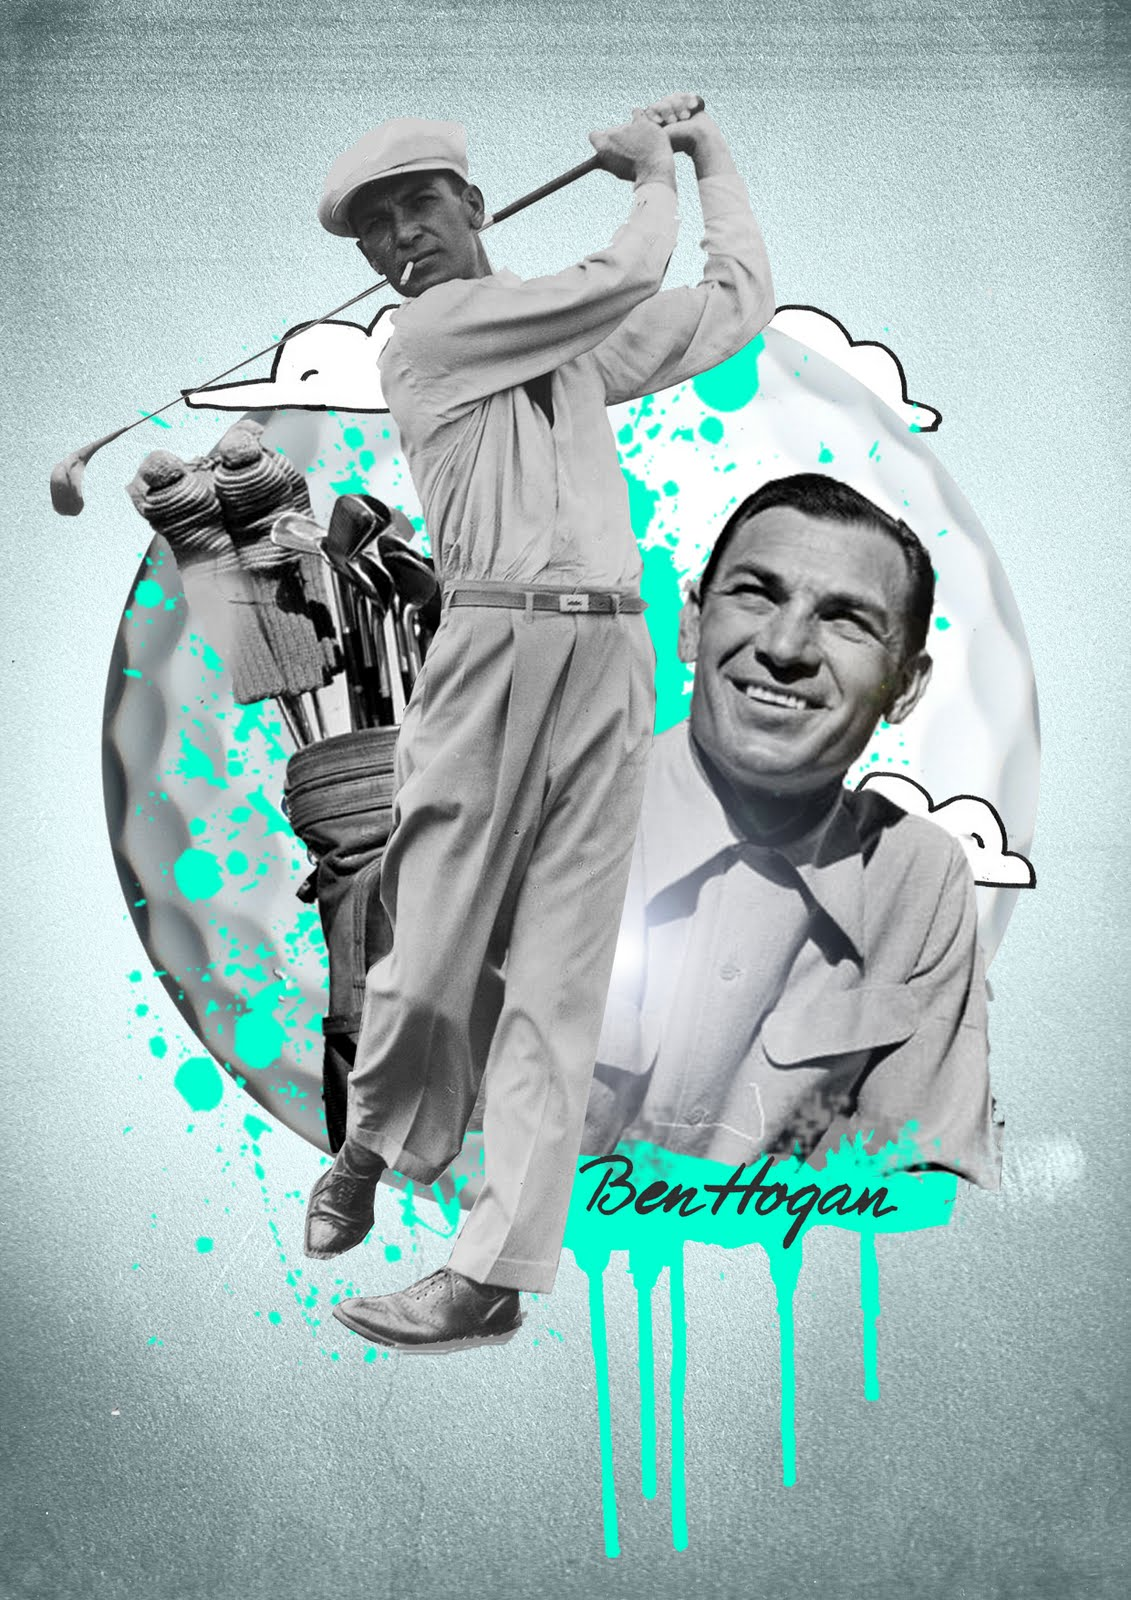 ben hogan Hogan: the man who played for glory by gregston, gene [ben hogan] and a great selection of similar used, new and collectible books available now at abebookscom.